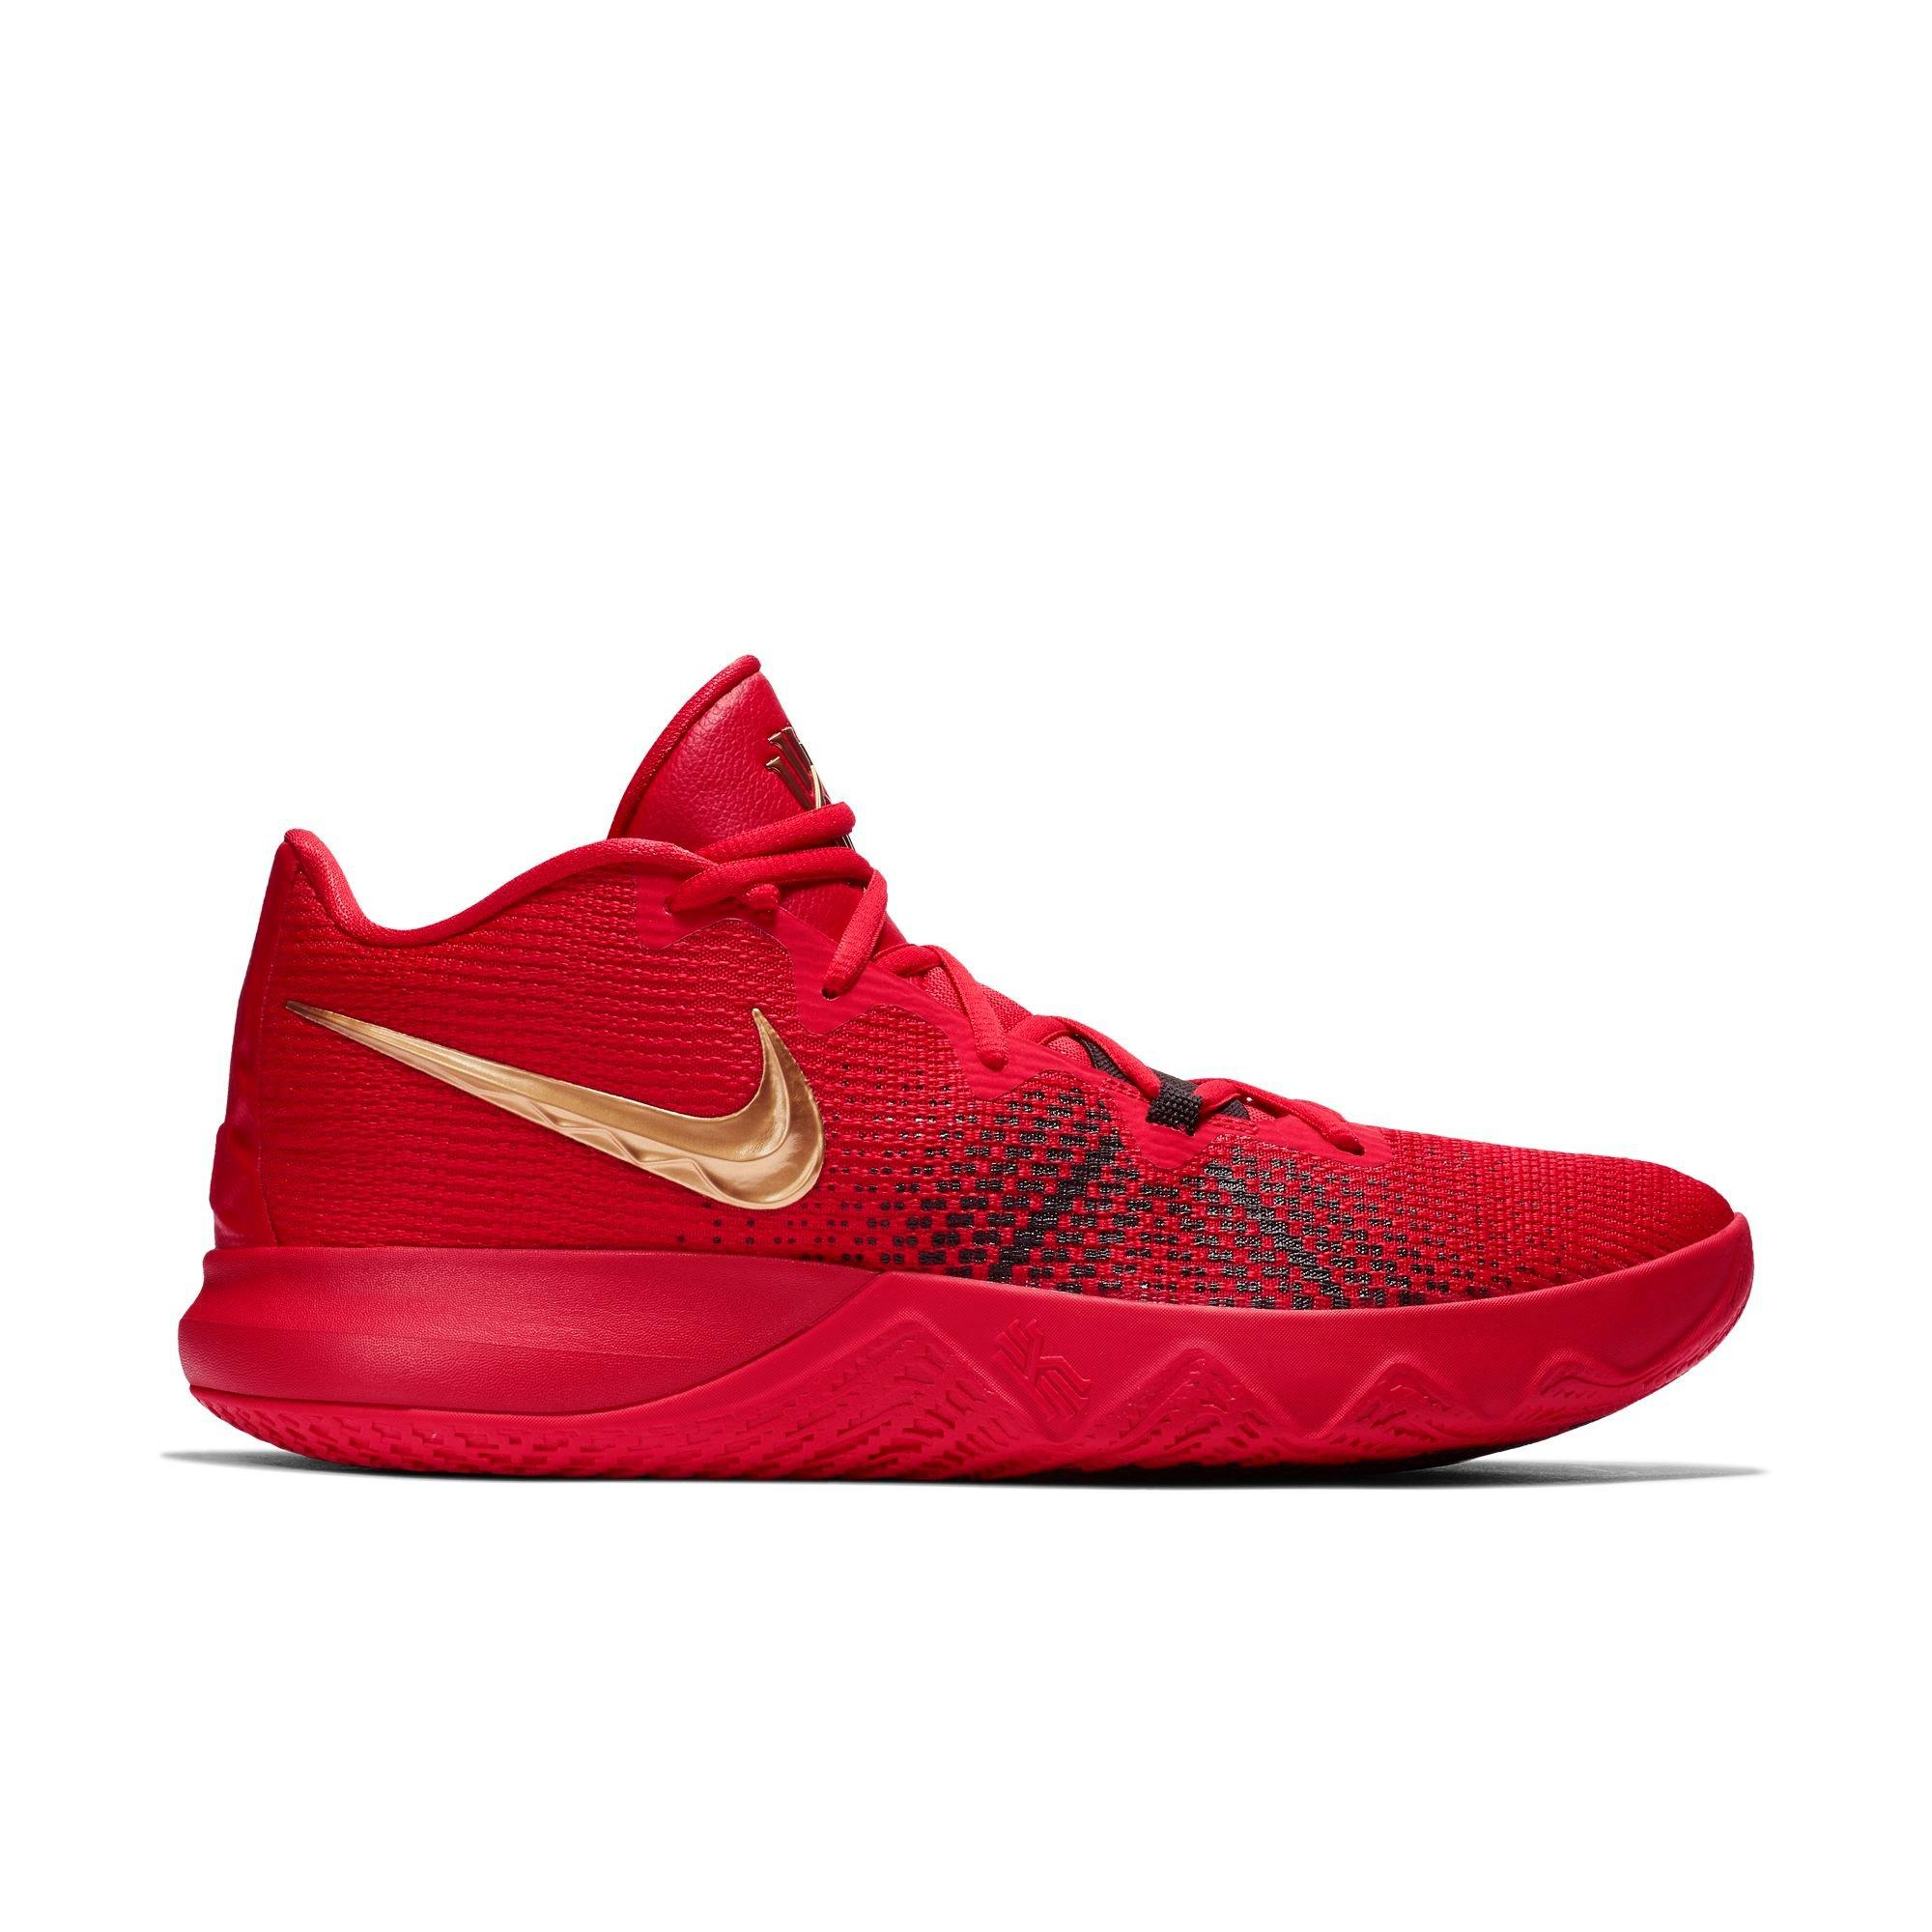 44324f2c44f7be Kyrie Irving Shoes Red And Black New Kyrie Irving Shoes